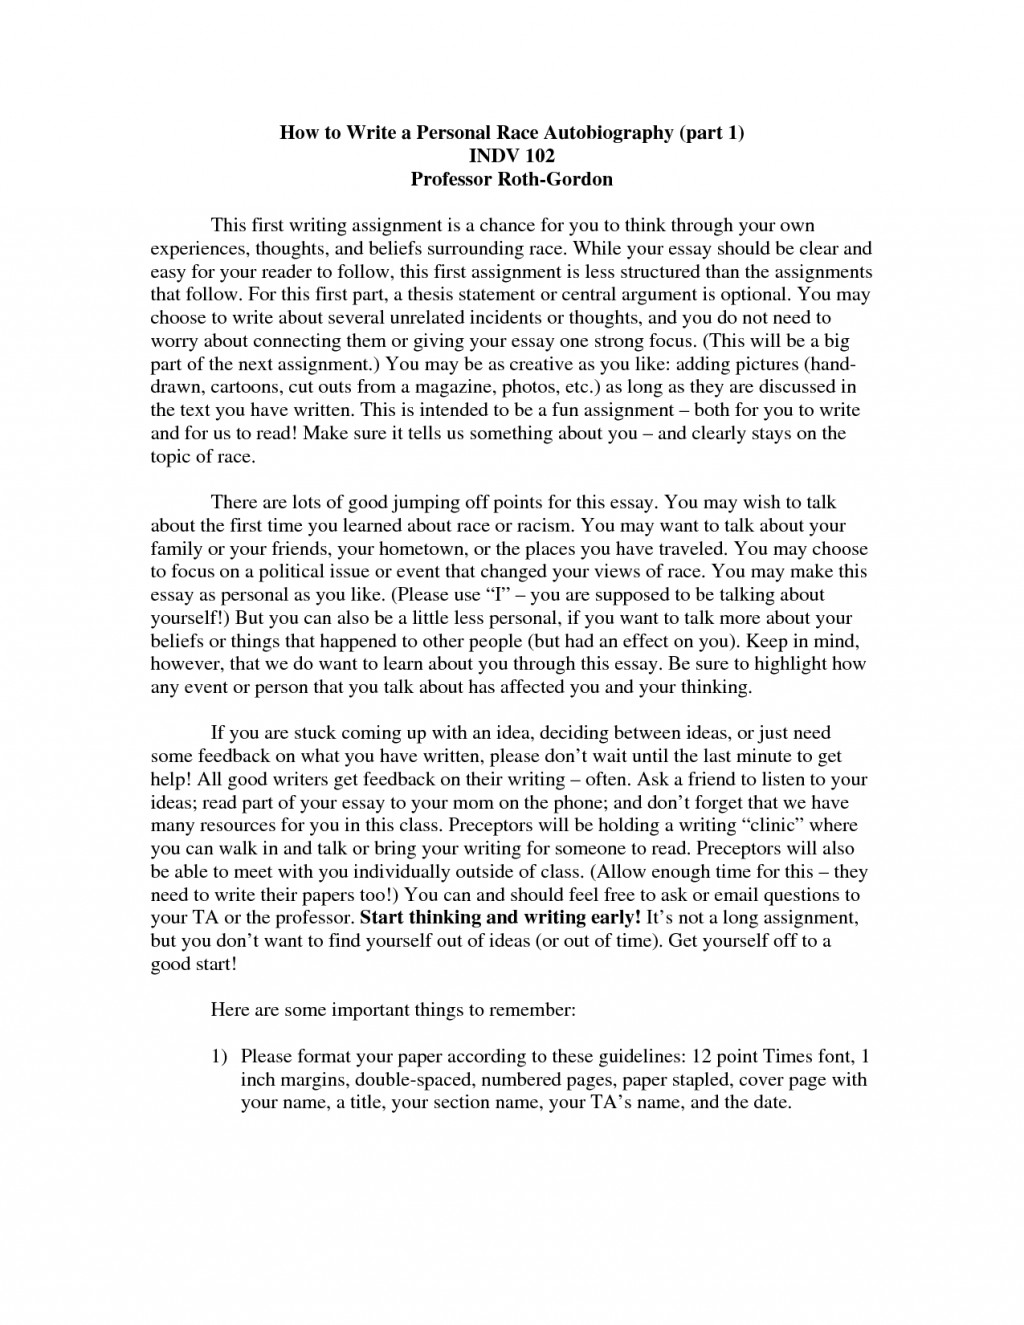 020 Essay Example Autobiography Best Photos Of Personal Narrative An Autobiographical How To Write Writing Outline For Scholarship College Admissions Unique Highschool Students Pdf Bibliography Examples Large